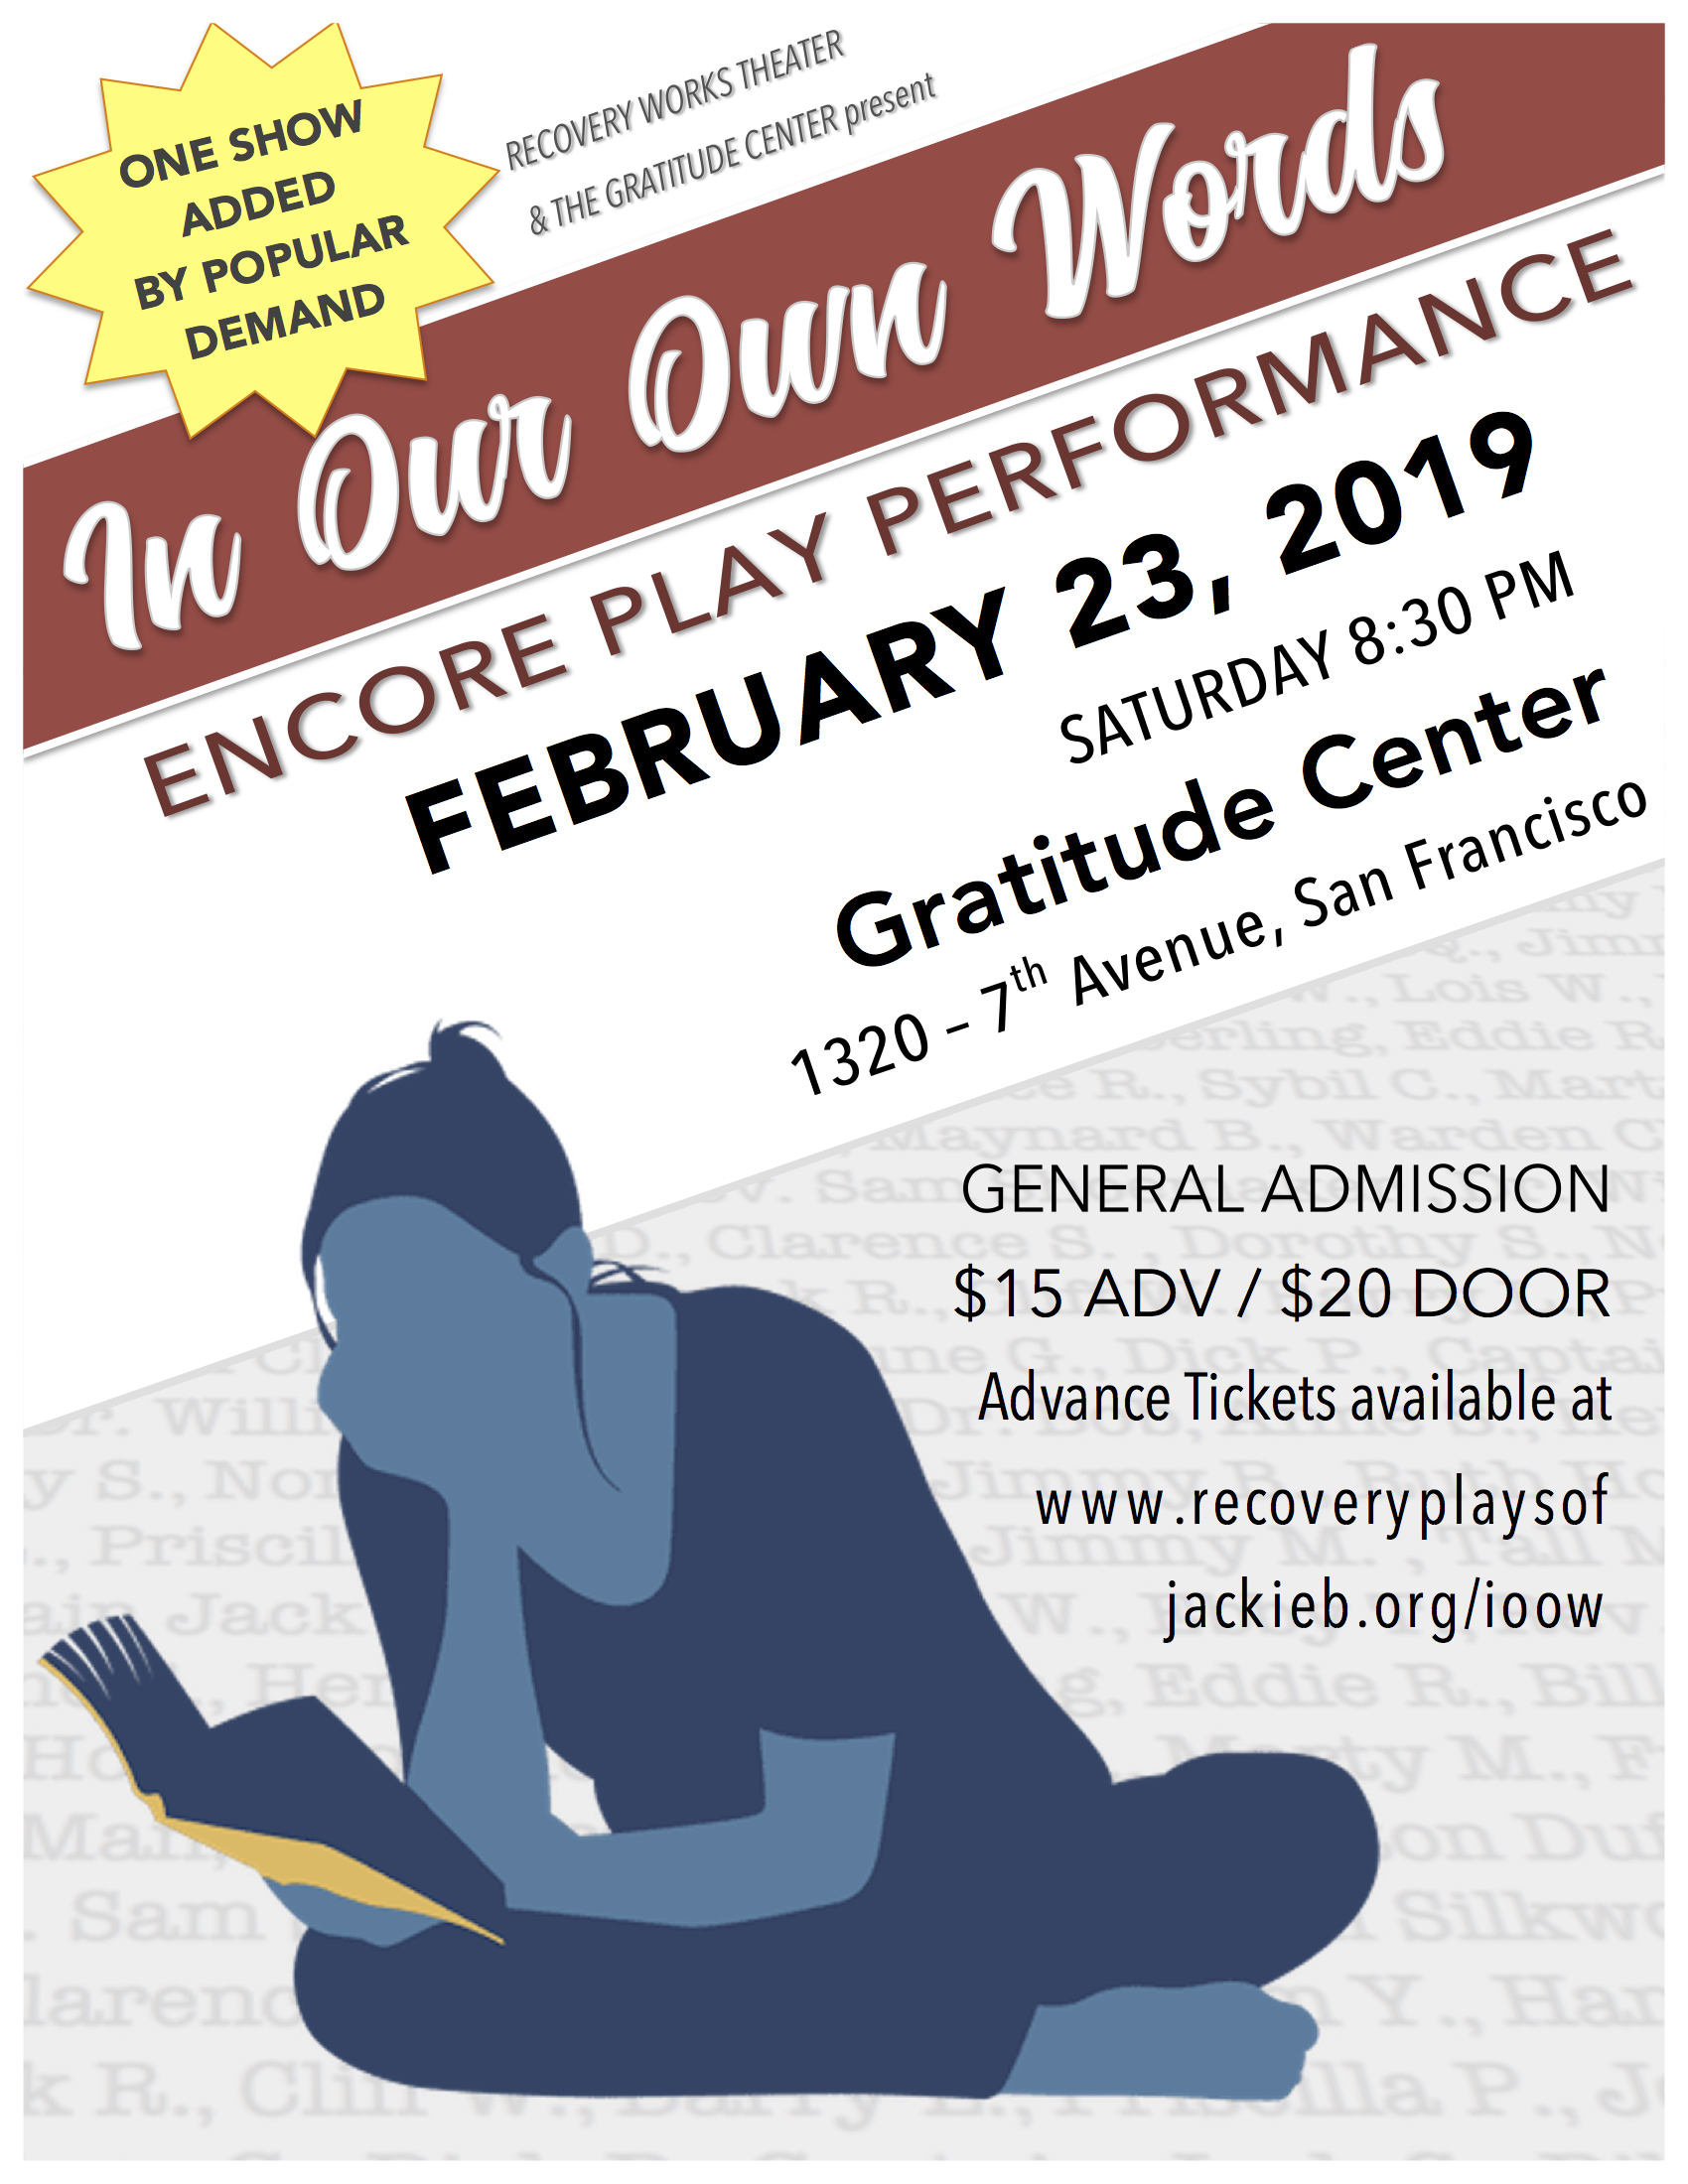 Flyer ENCORE IOOW 10th Anniversary Gratitude Center 2019.docx copy.jpg